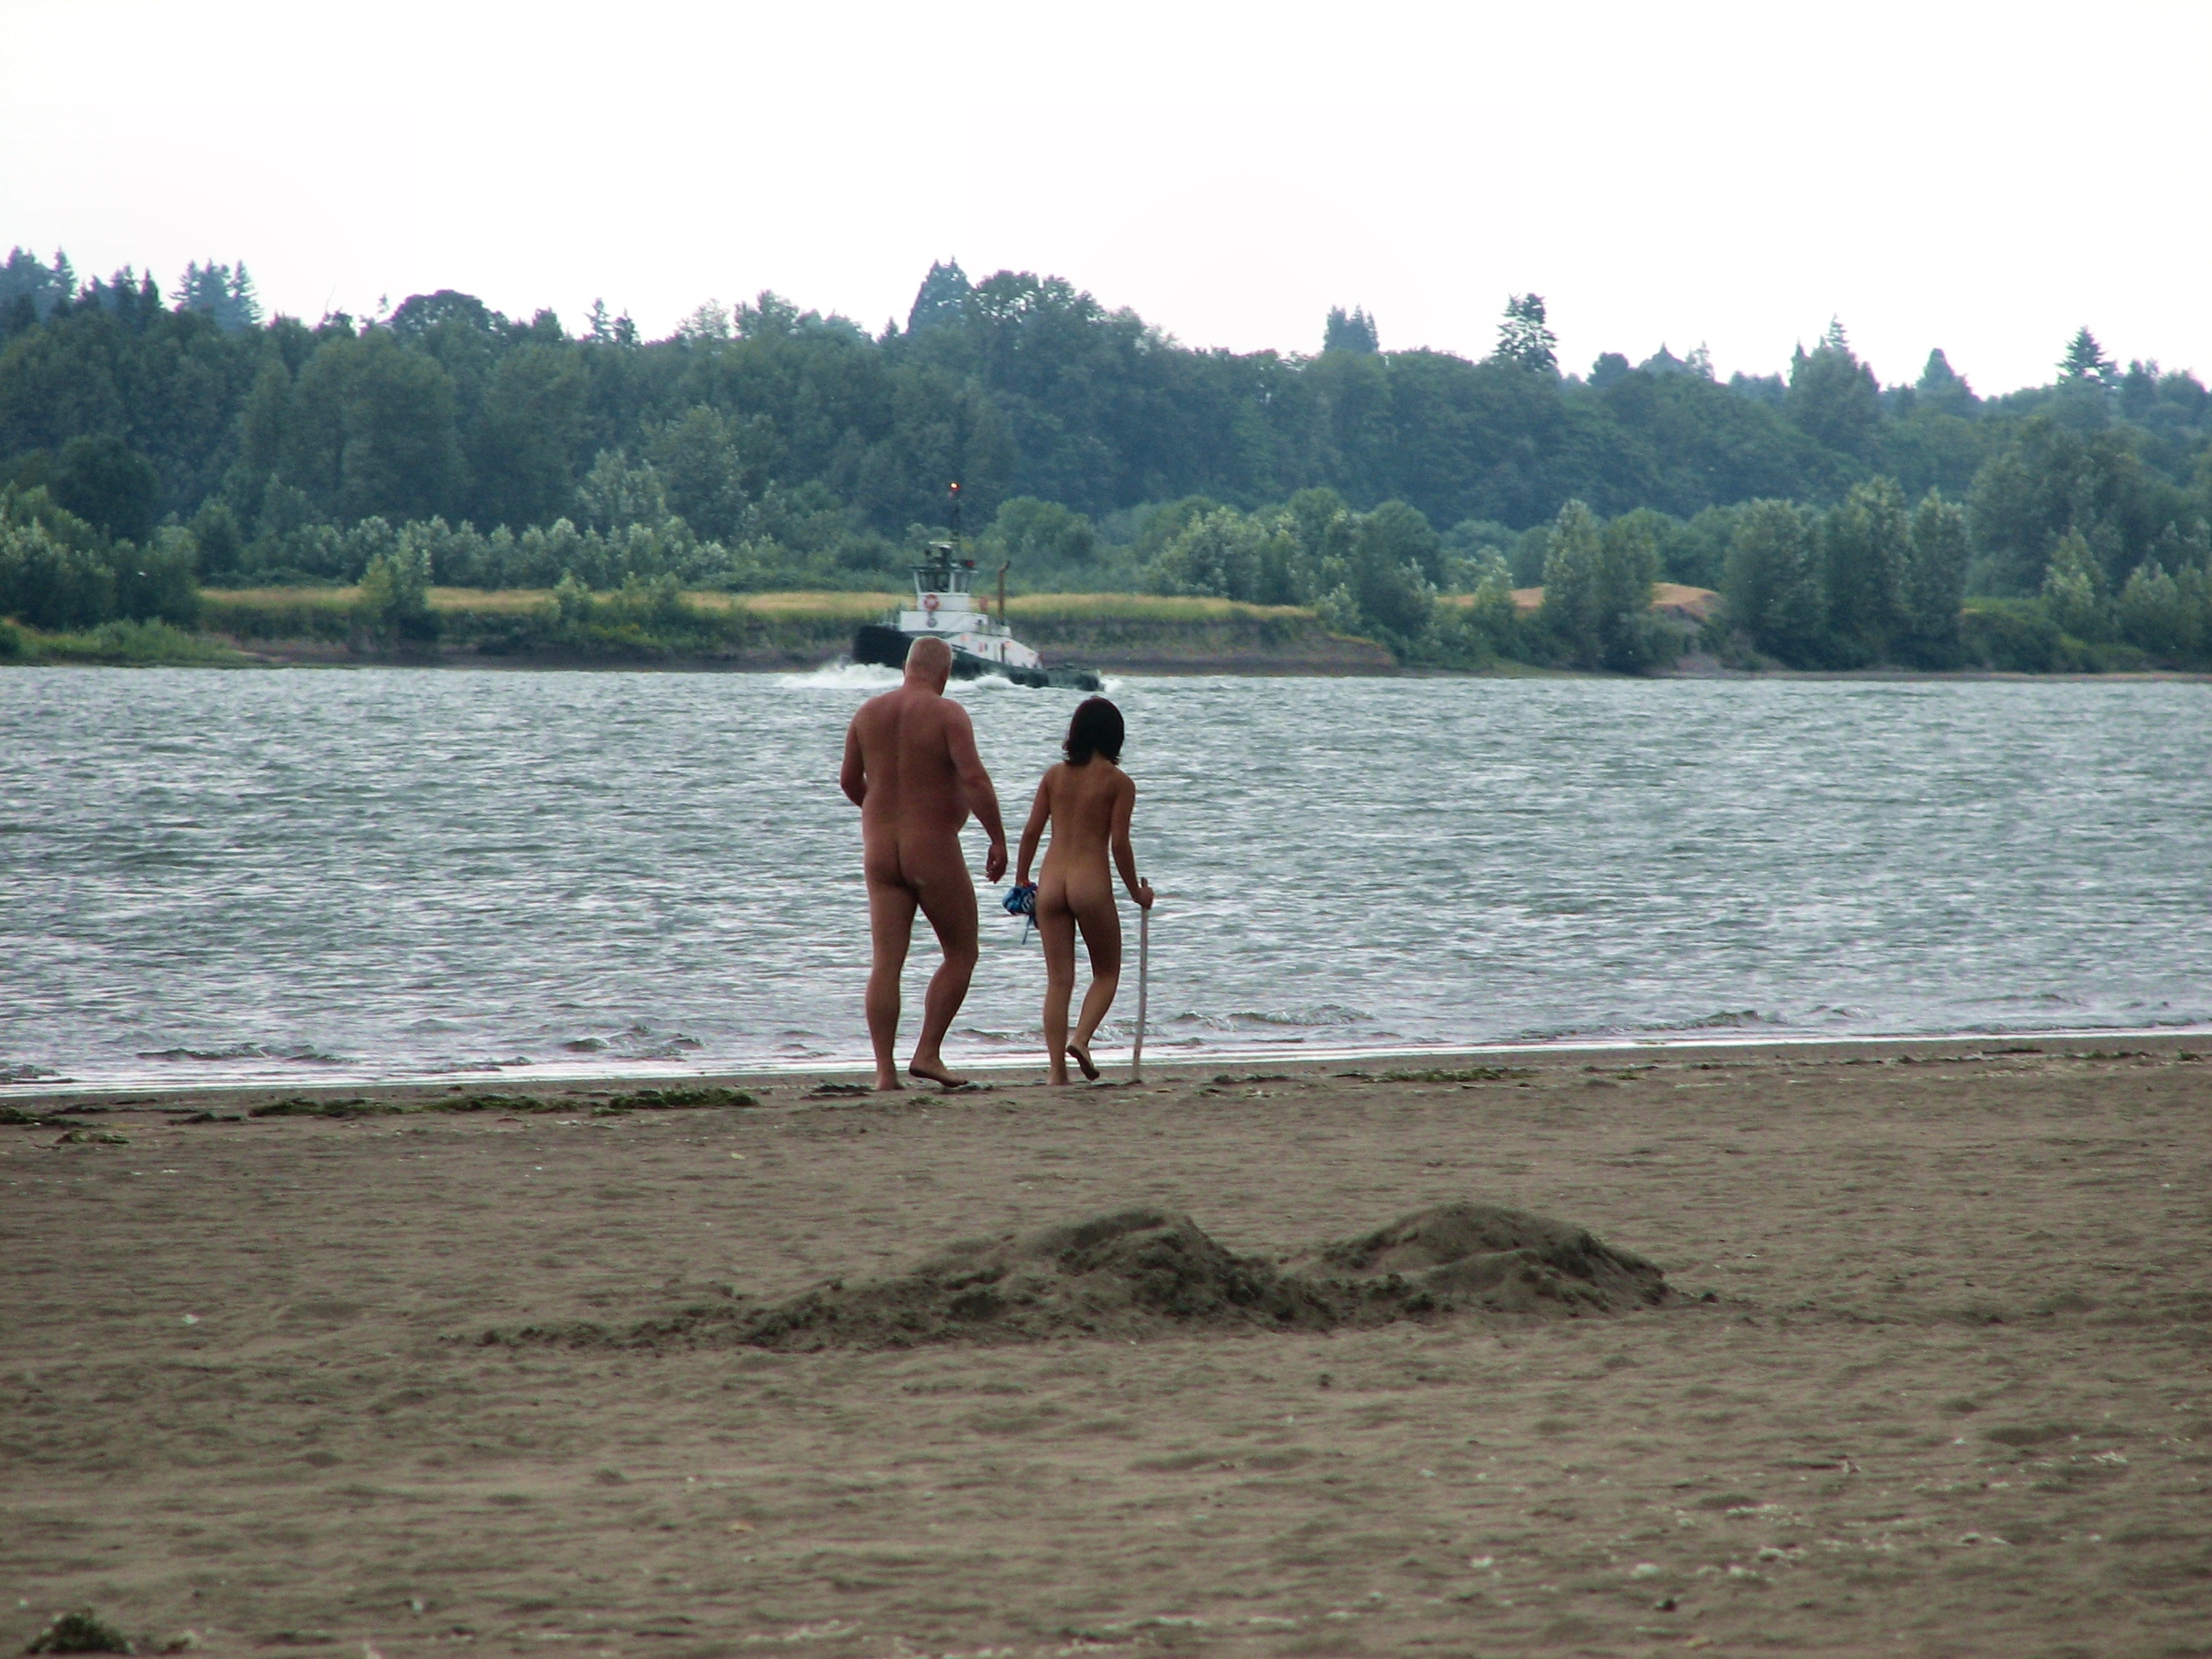 You father daughter nude beach mistaken